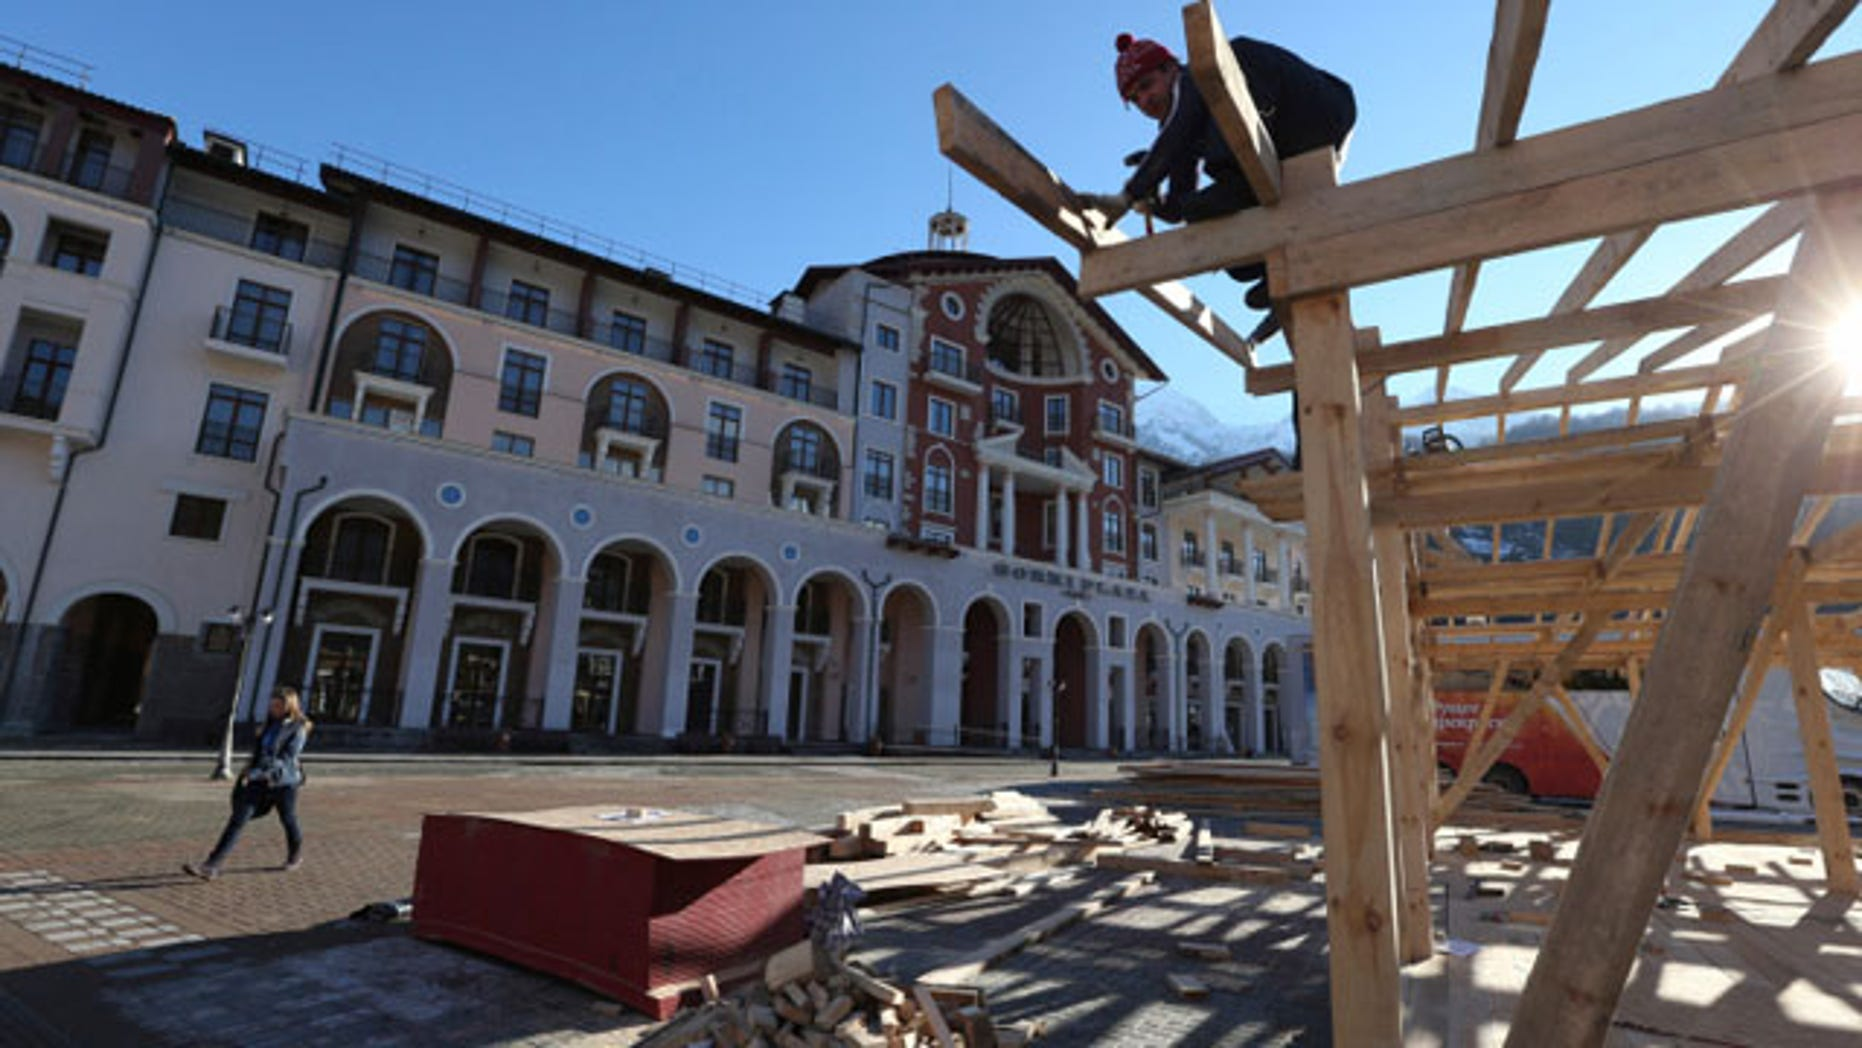 February 2, 2014: Construction work continues apace outside the Gorki Plaza East hotel in Krasnaya Polyana, Russia. (AP)